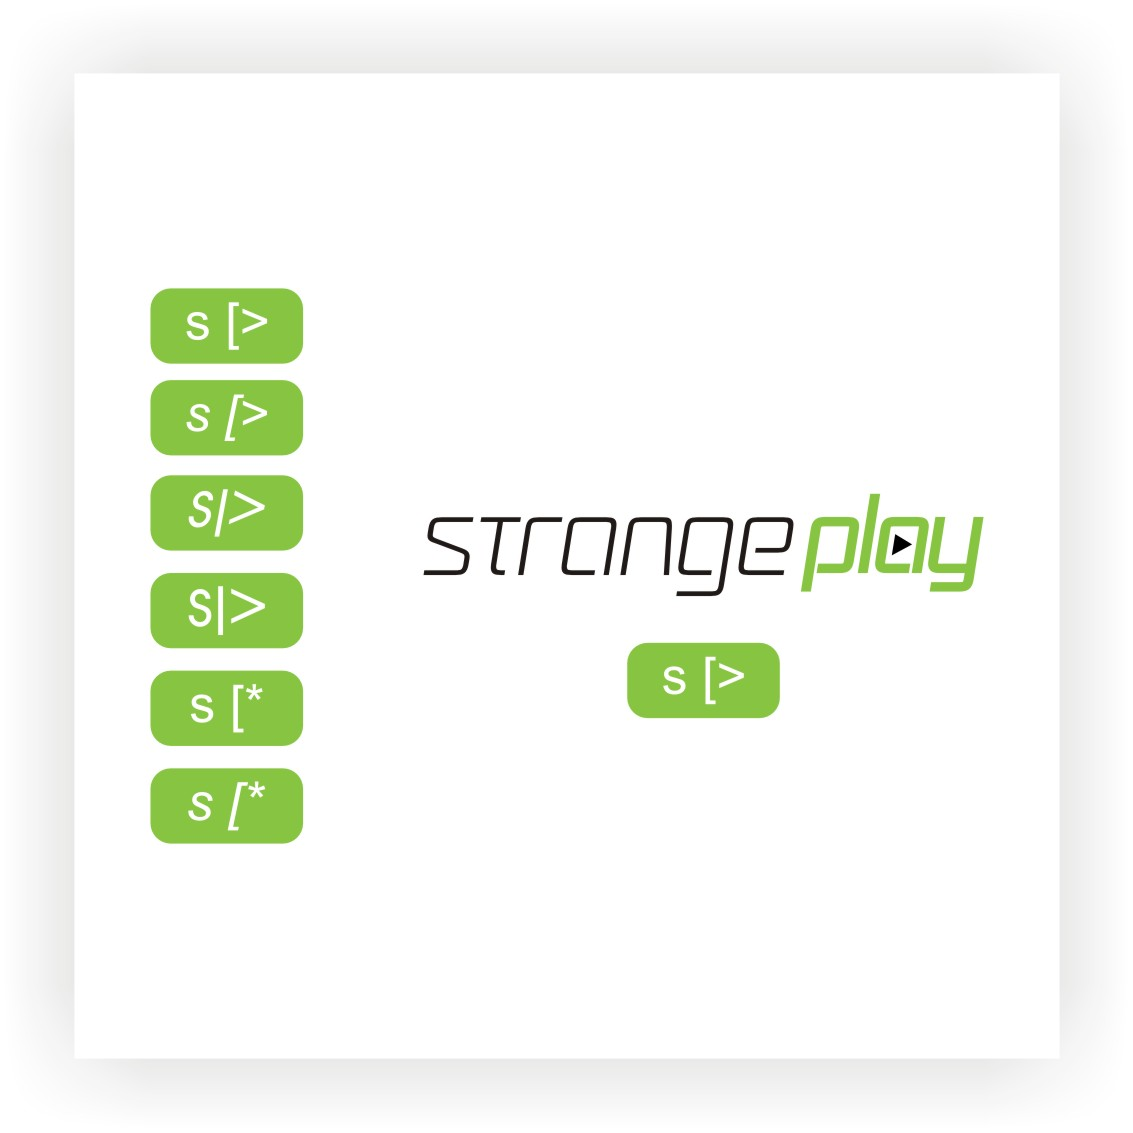 Logo Design by graphicleaf - Entry No. 112 in the Logo Design Contest Strange Play Logo Design.